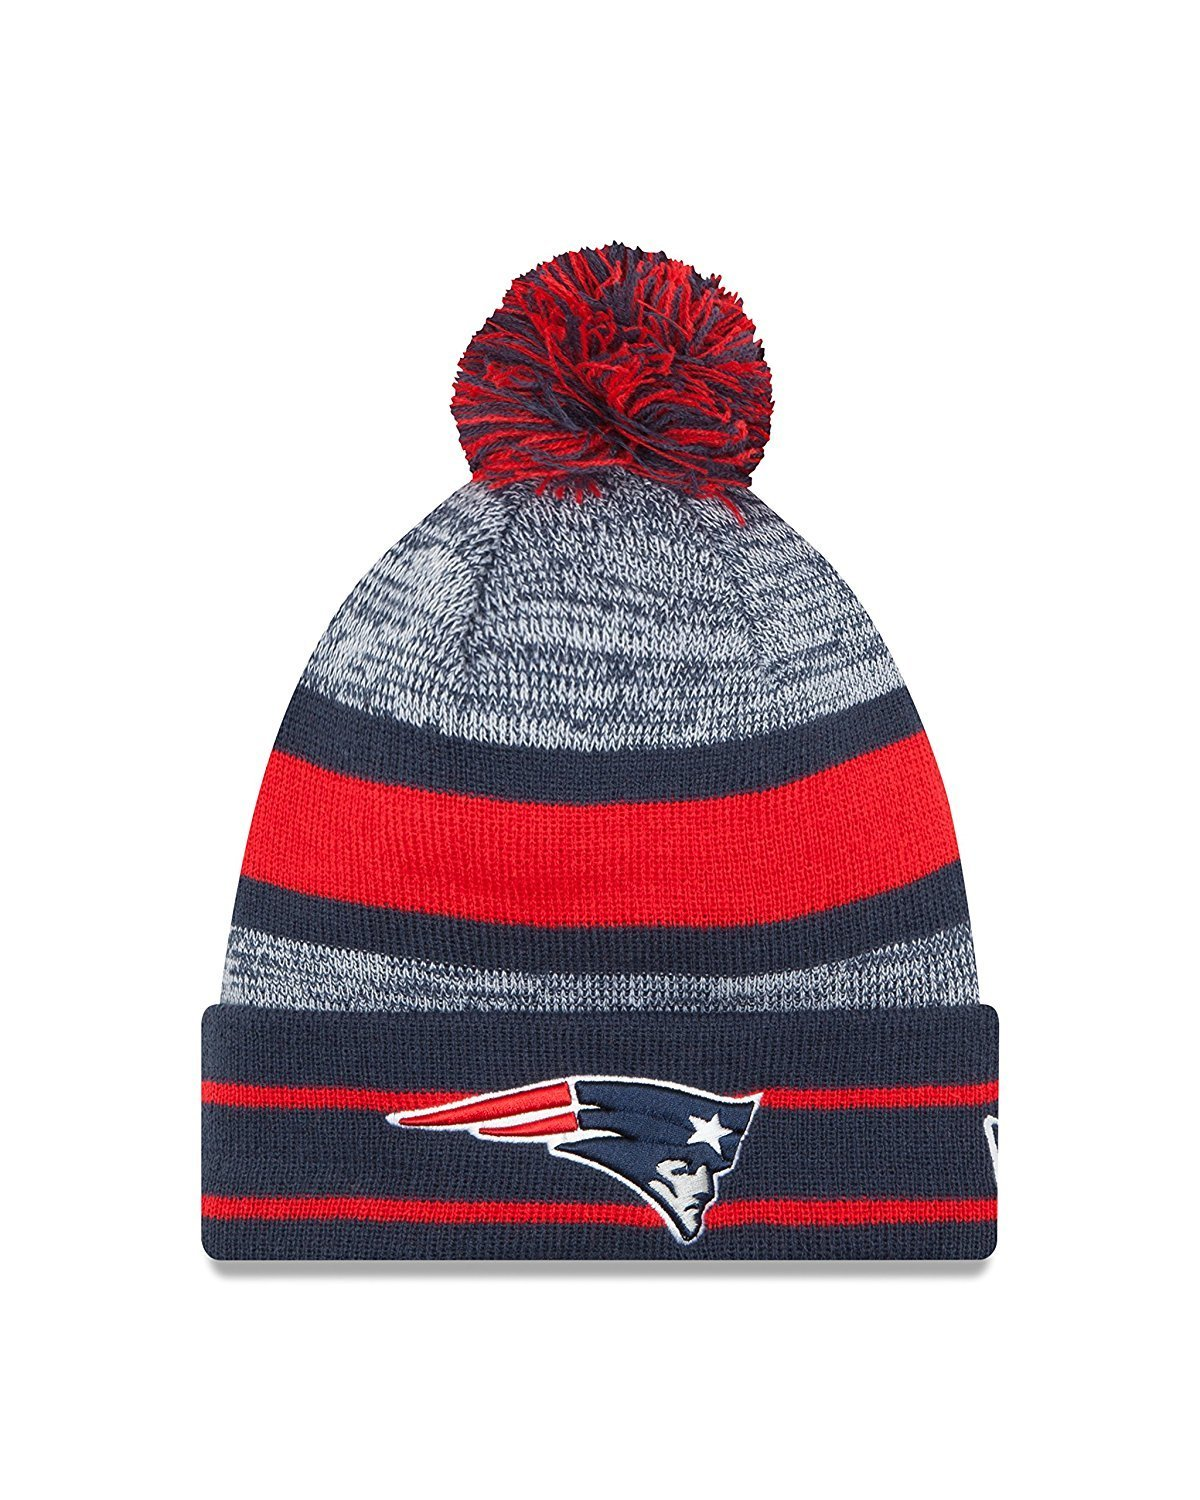 72422463ad1b3 Get Quotations · New Era NFL New England Patriots On Field Blue Sport Knit  Beanie Hat With Pom